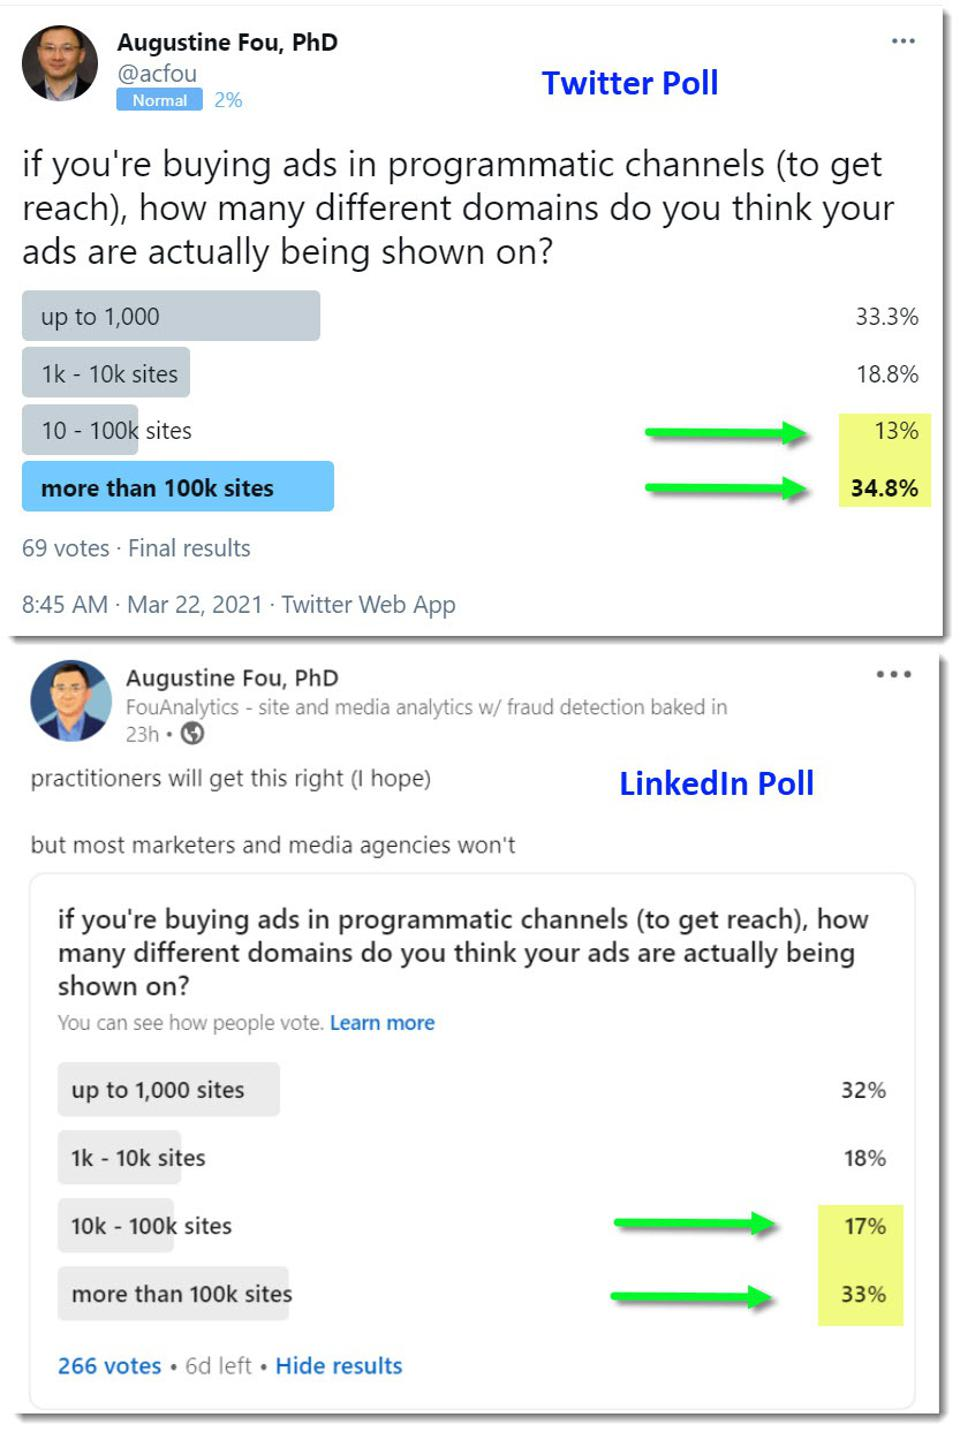 50% of marketers think their ads are going on more than 100k sites